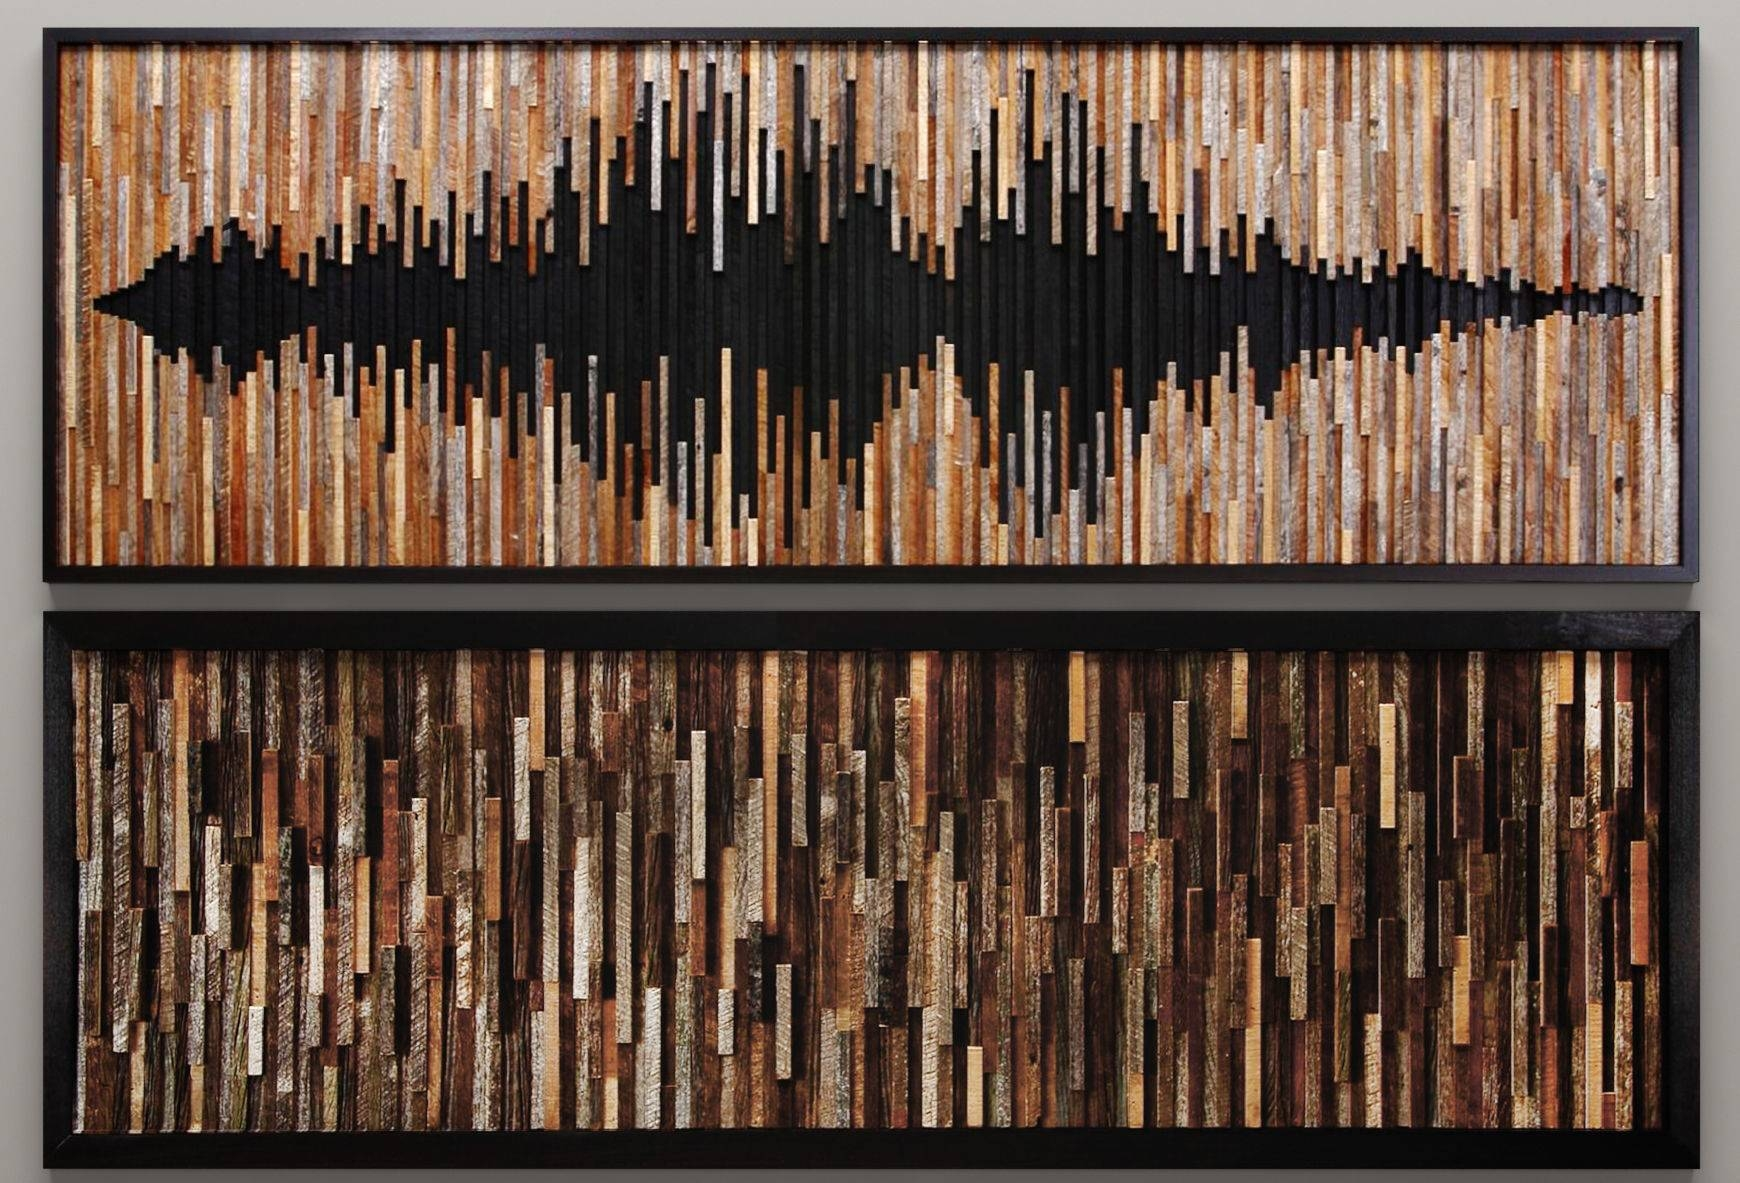 Wood Wall Art 46 3D Model | Cgtrader Inside Most Current Wall Art On Wood (View 15 of 20)